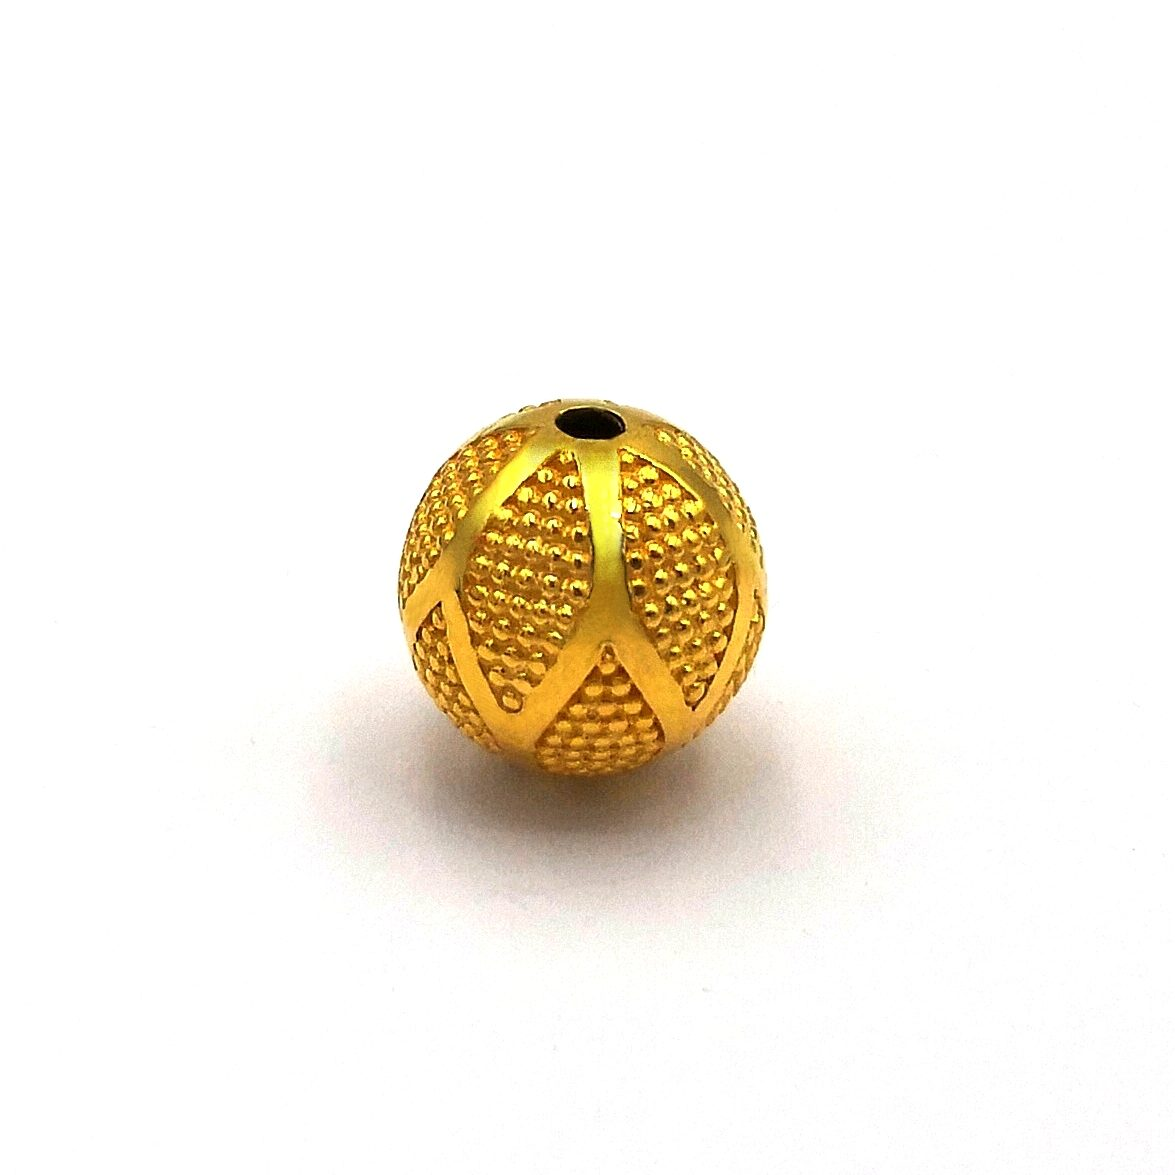 12 mm 22K Gold Plated 925 Sterling Silver Bali Bead